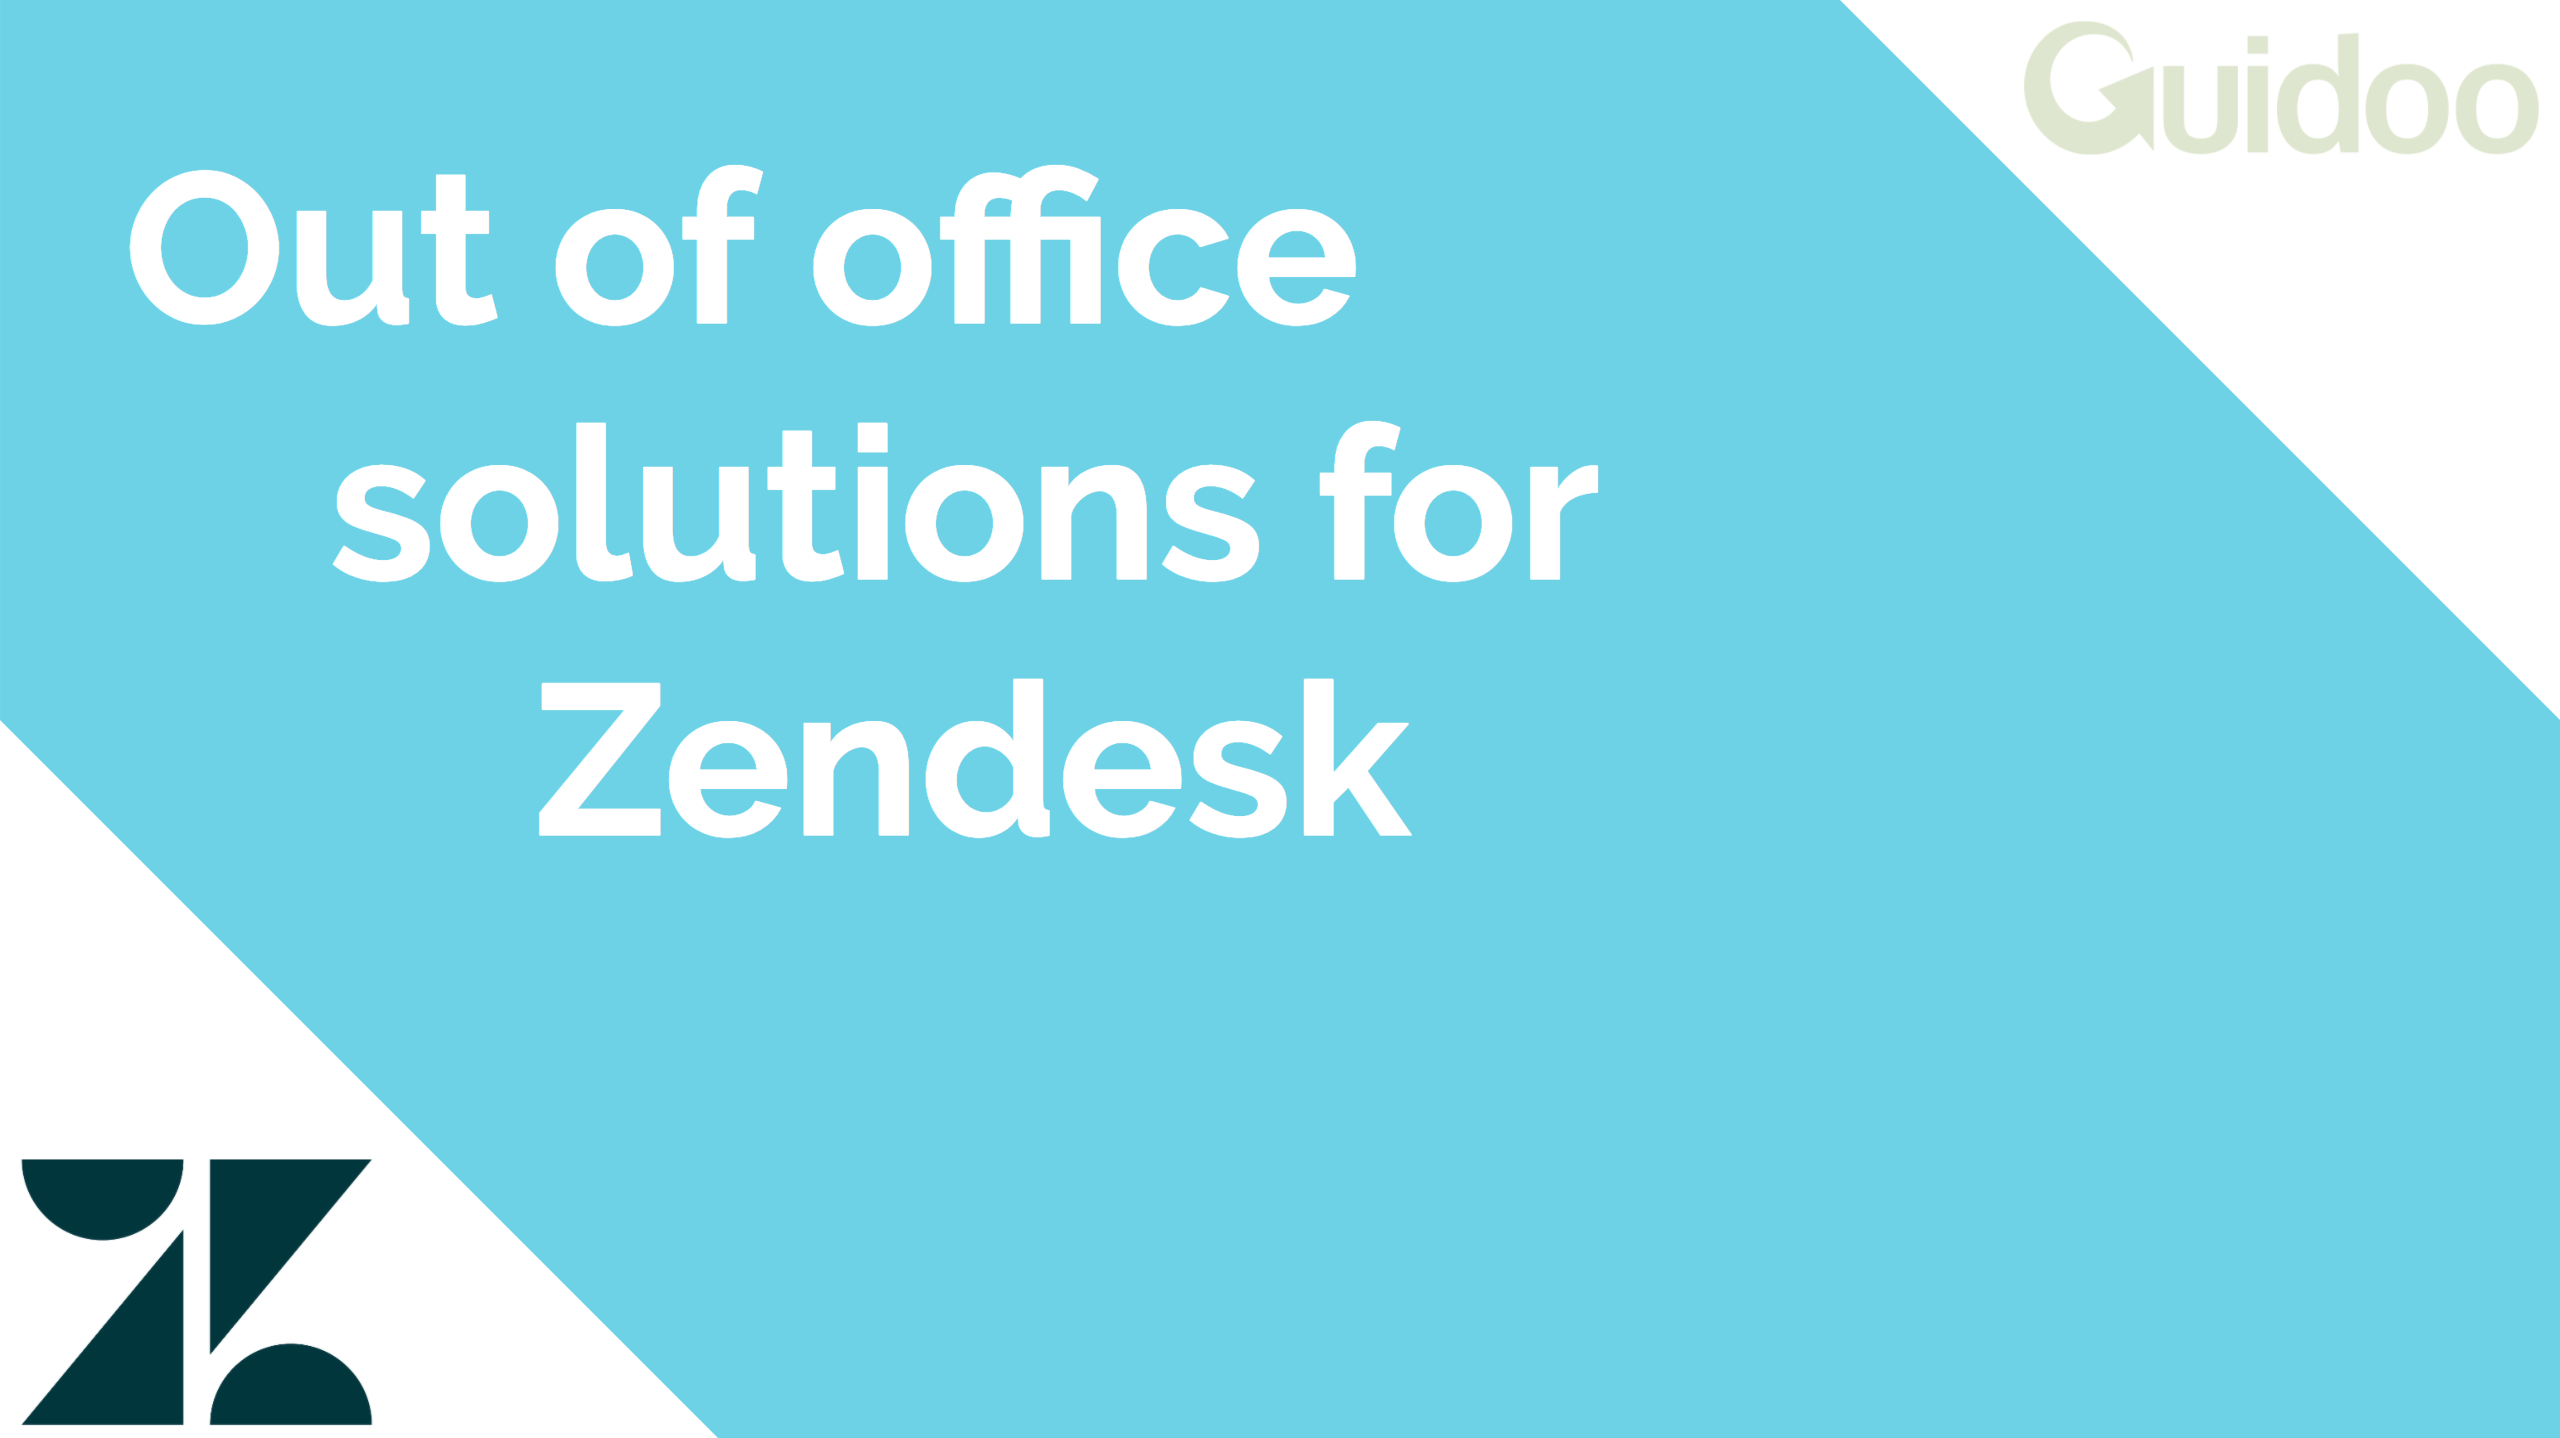 Out of office solutions for Zendesk